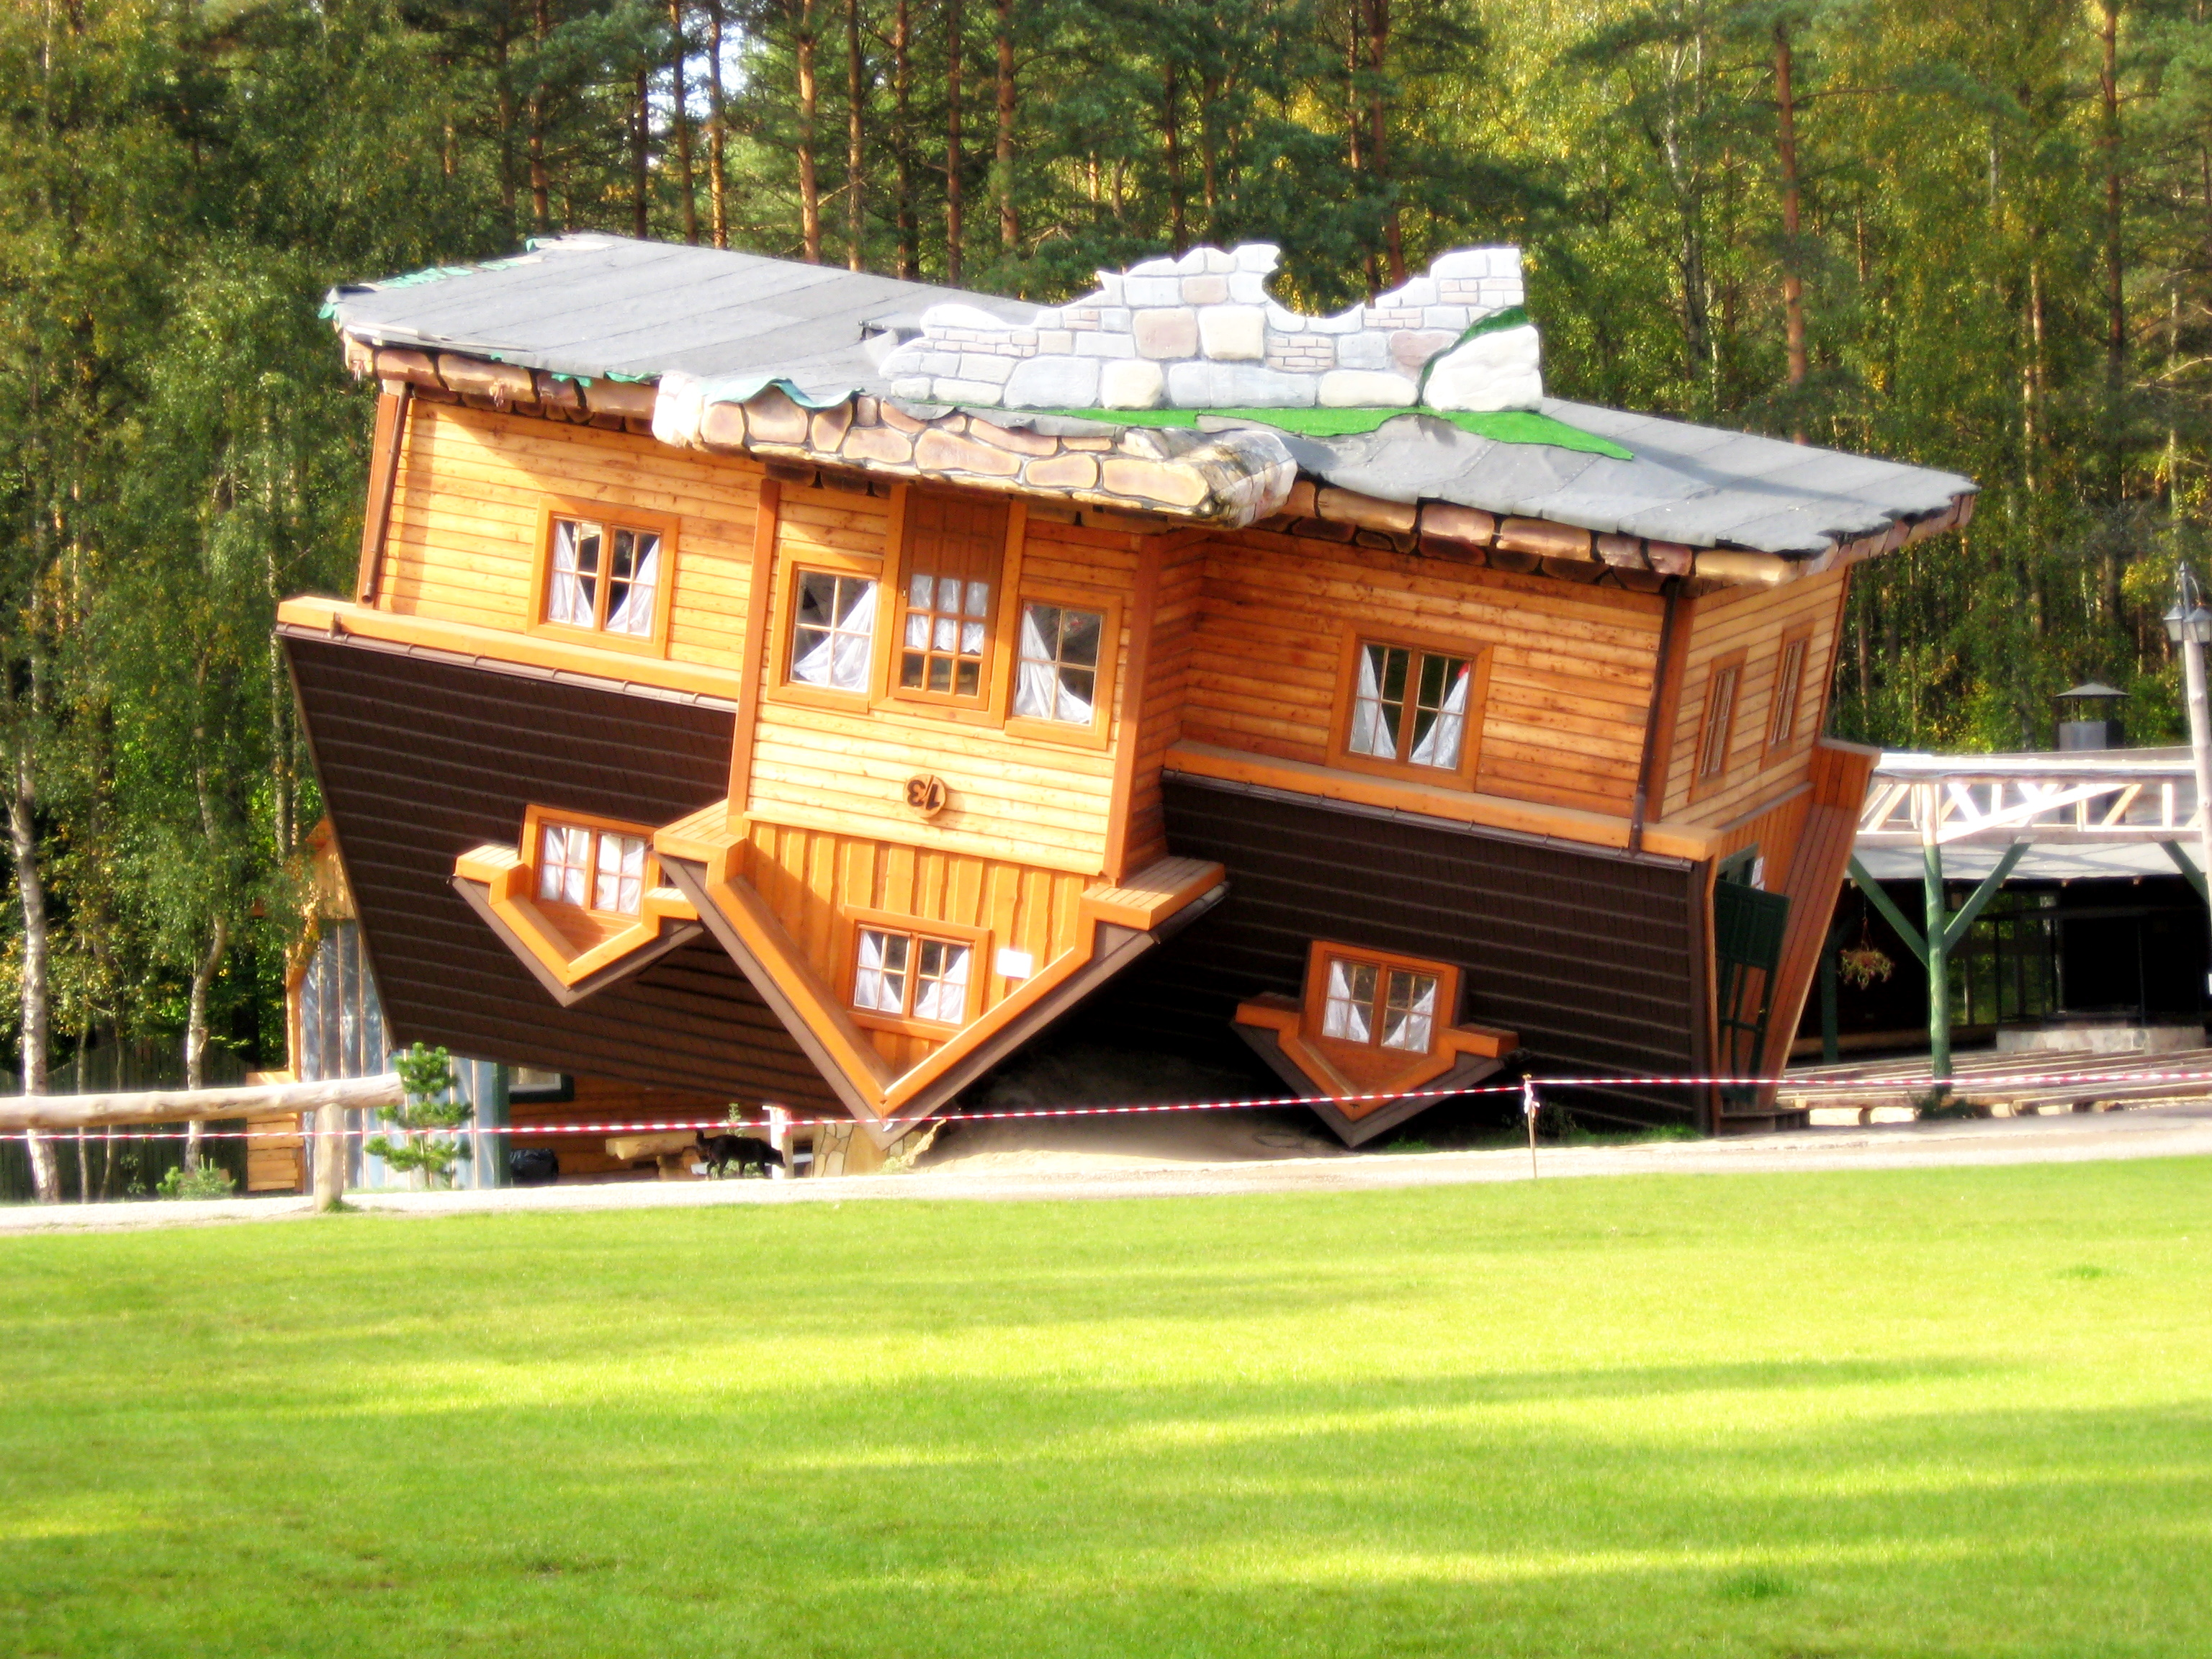 File:An 'upside-down house' in open-air museum, Szybmark ...